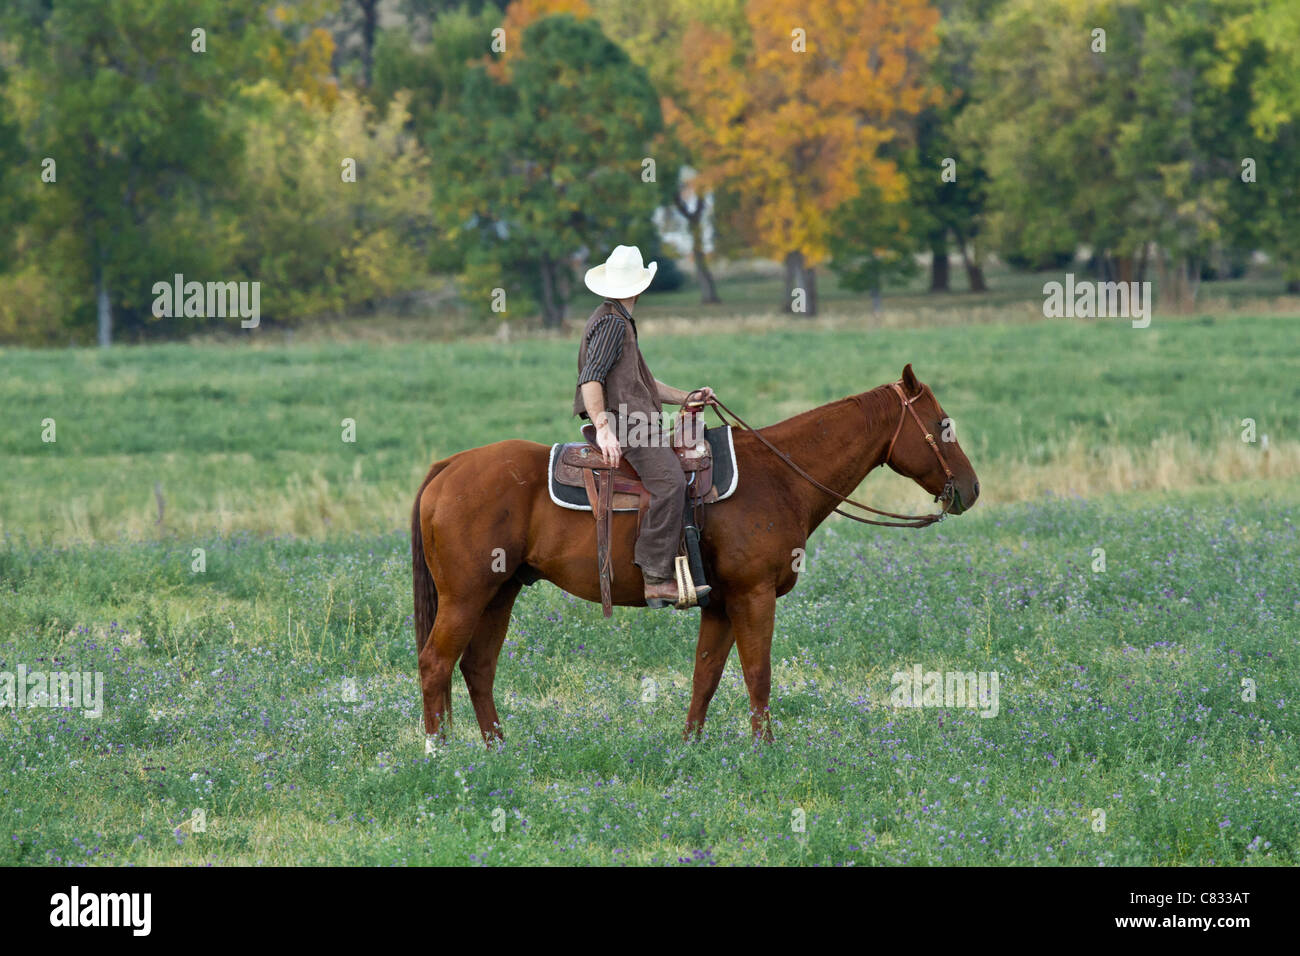 Cowboy on a brown horse looking off into the distance - Stock Image